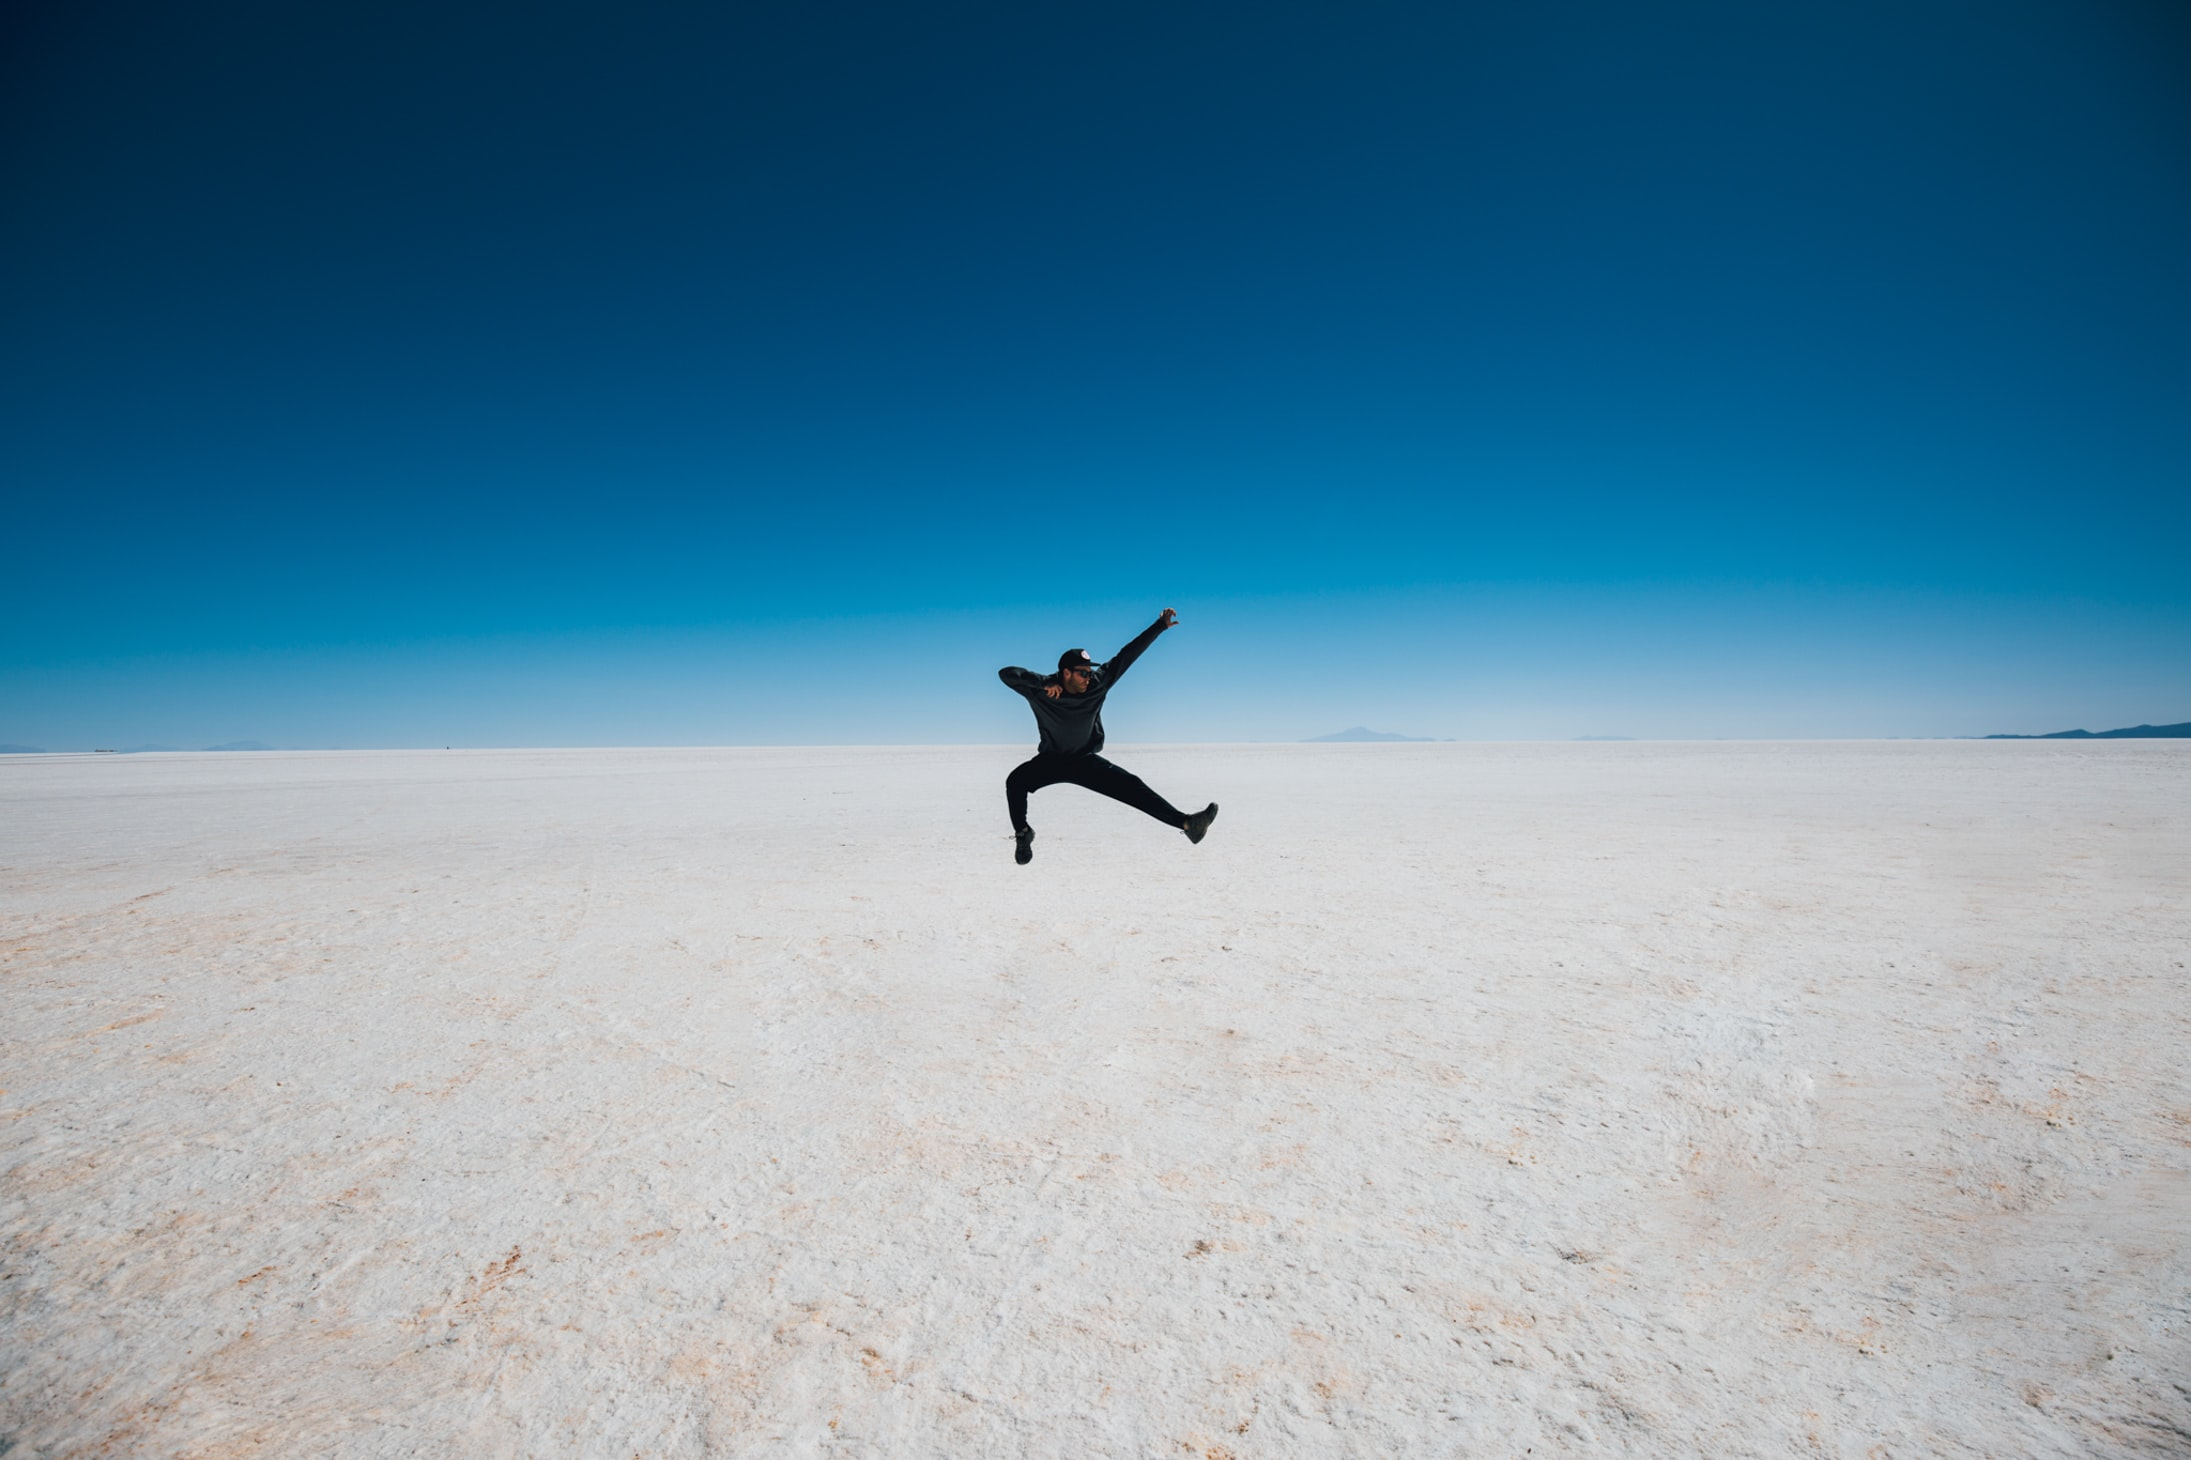 man jumping on desert